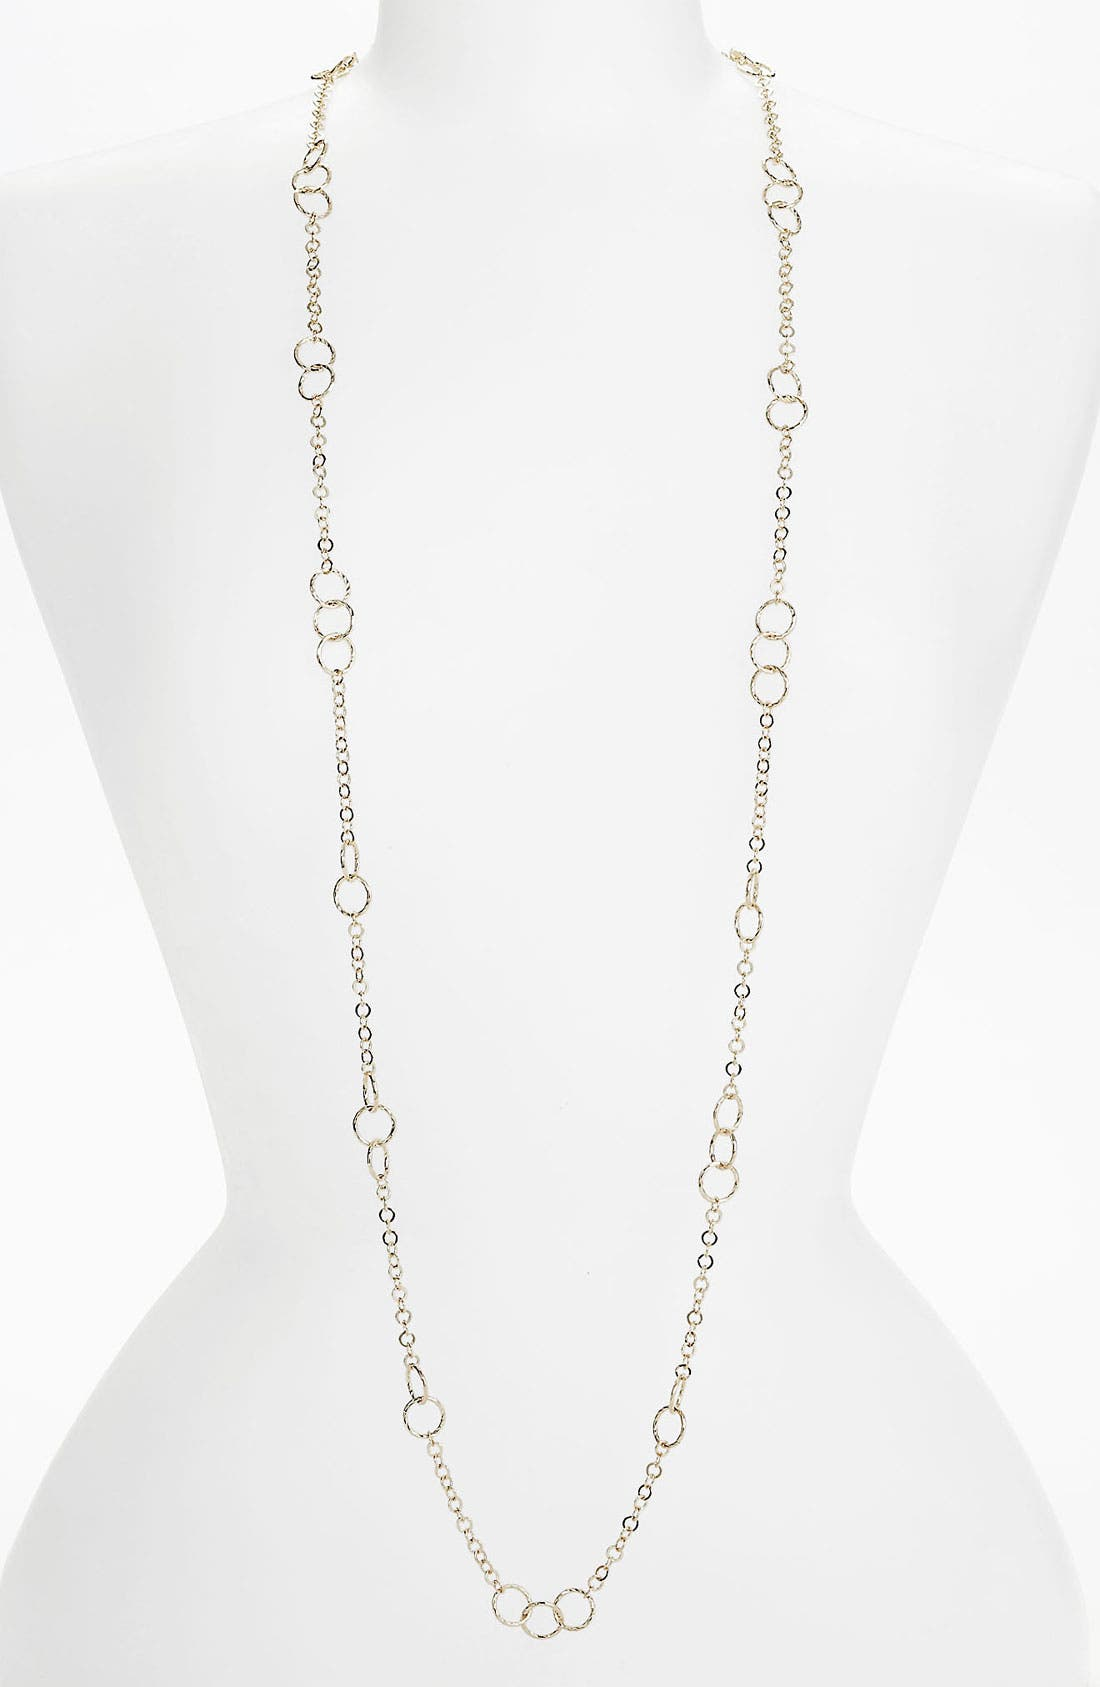 Main Image - Nordstrom Long Circle Link Necklace